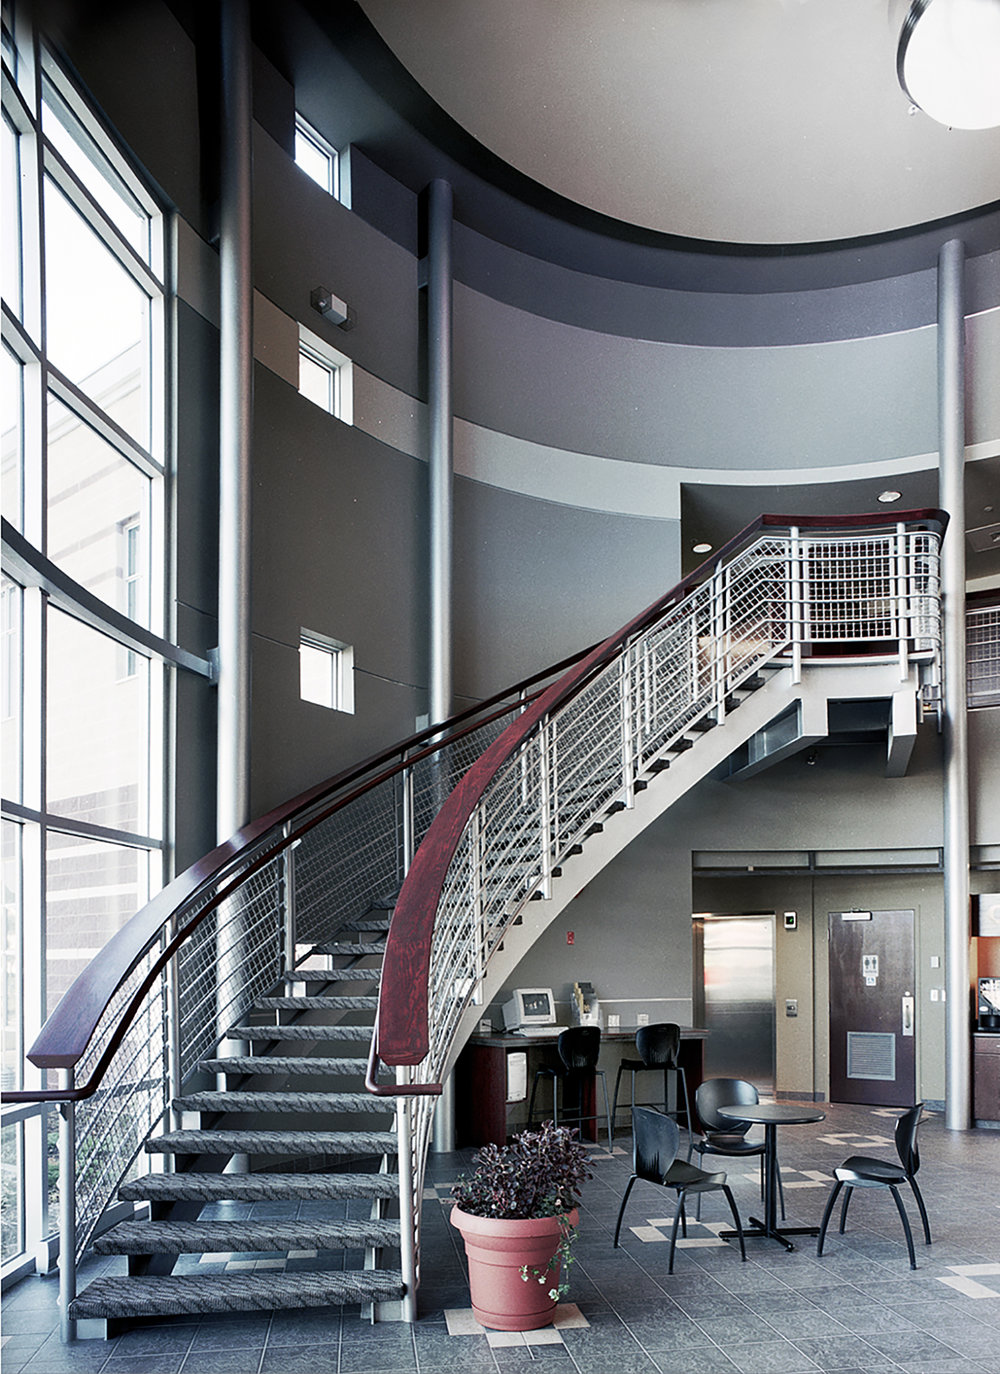 Holy Spirit (Entegra) Credit Union, interior photo of stairway